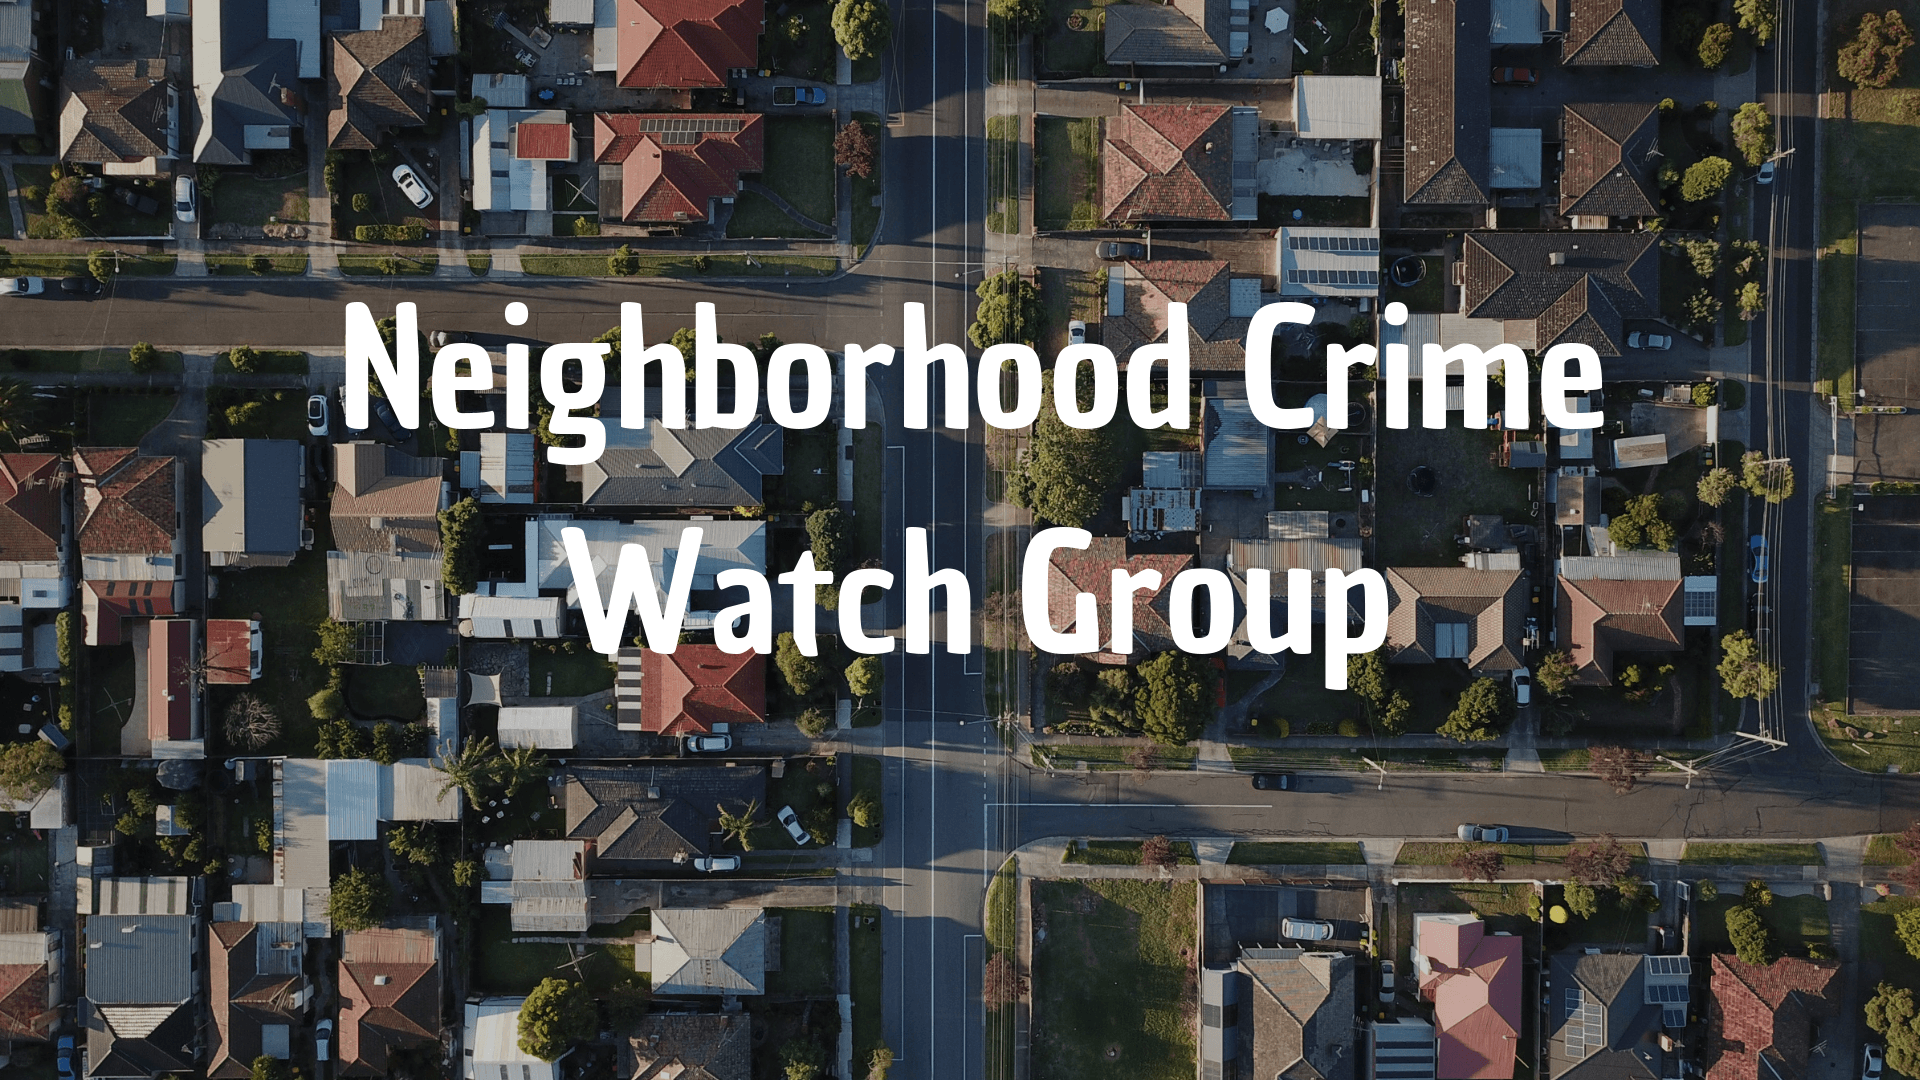 Neighborhood Crime Watch Group